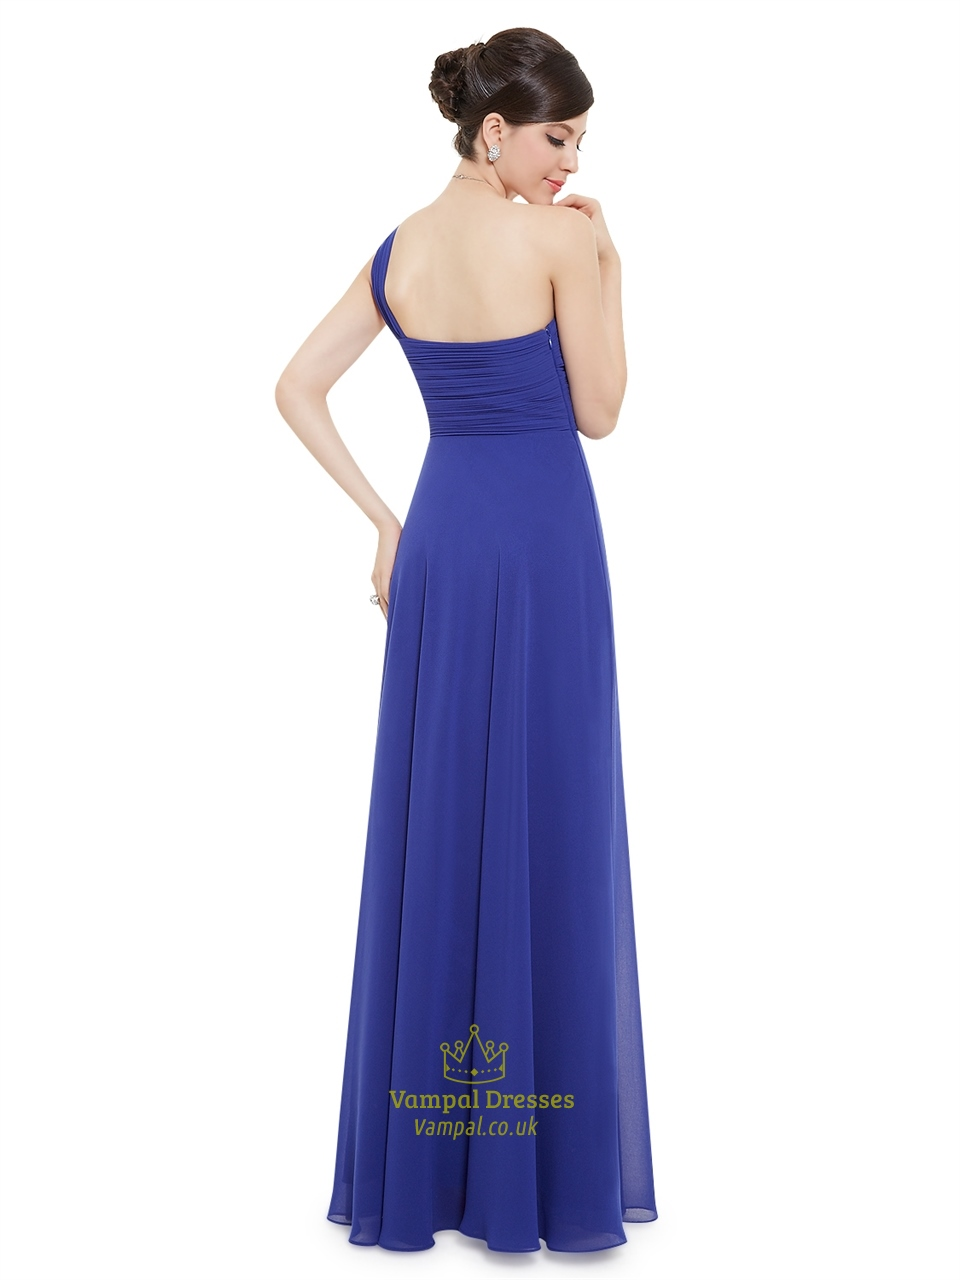 Blue royal bridesmaid dresses chiffon